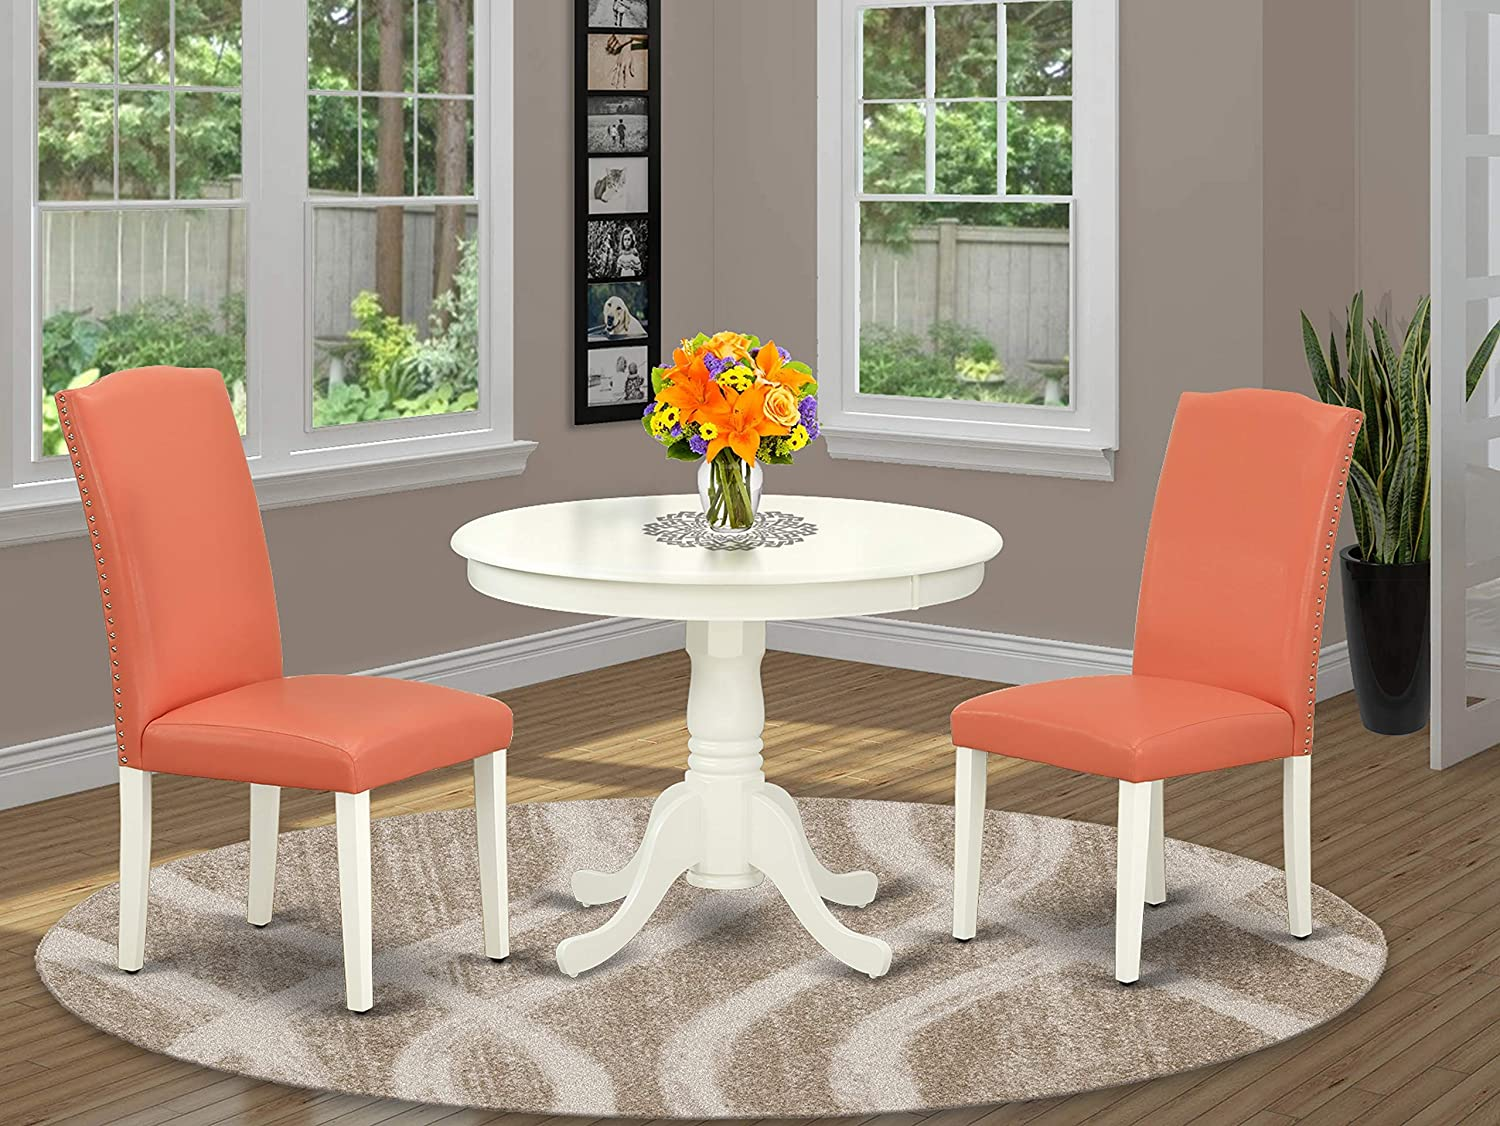 East-West Furniture Nook Kitchen Table Set 3 Pieces - Pink Flamingo PU Leather Parsons Dining Room Chairs - Linen White Finish Hardwood Pedestal Dining Table and Frame